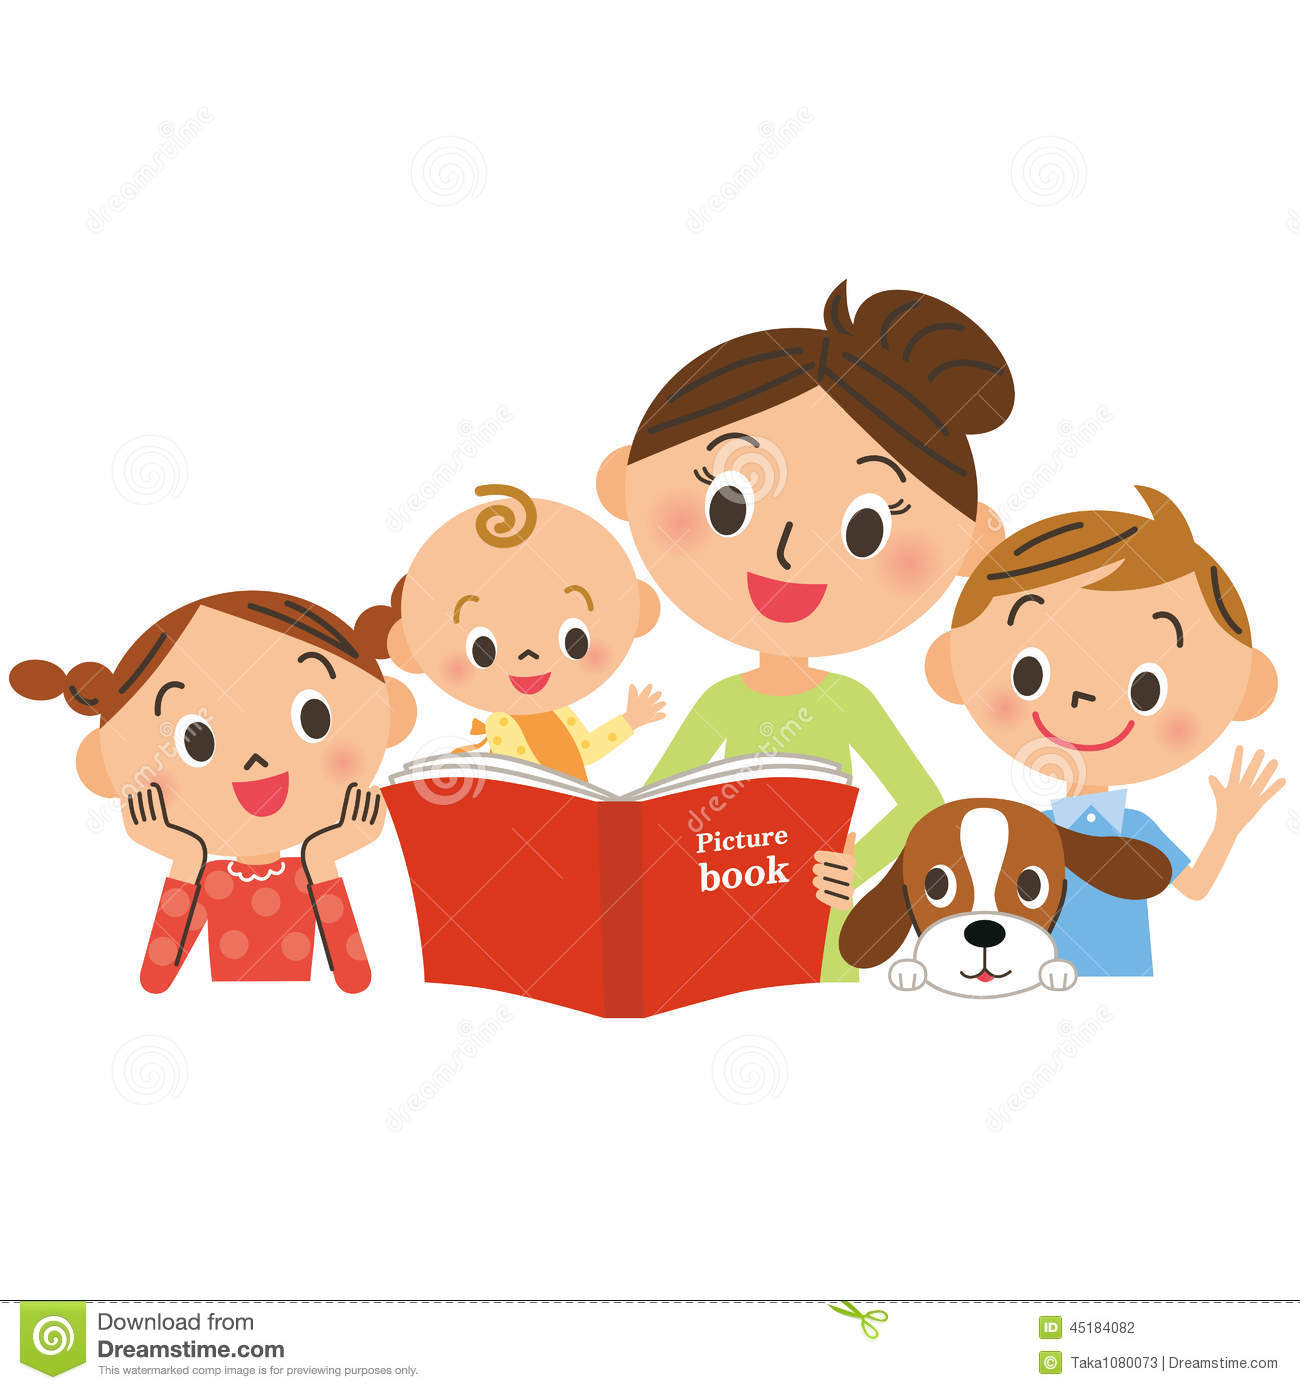 Children Gathering For Mother Reading A Picture Book Stock Vector ... Happy Child Clipart